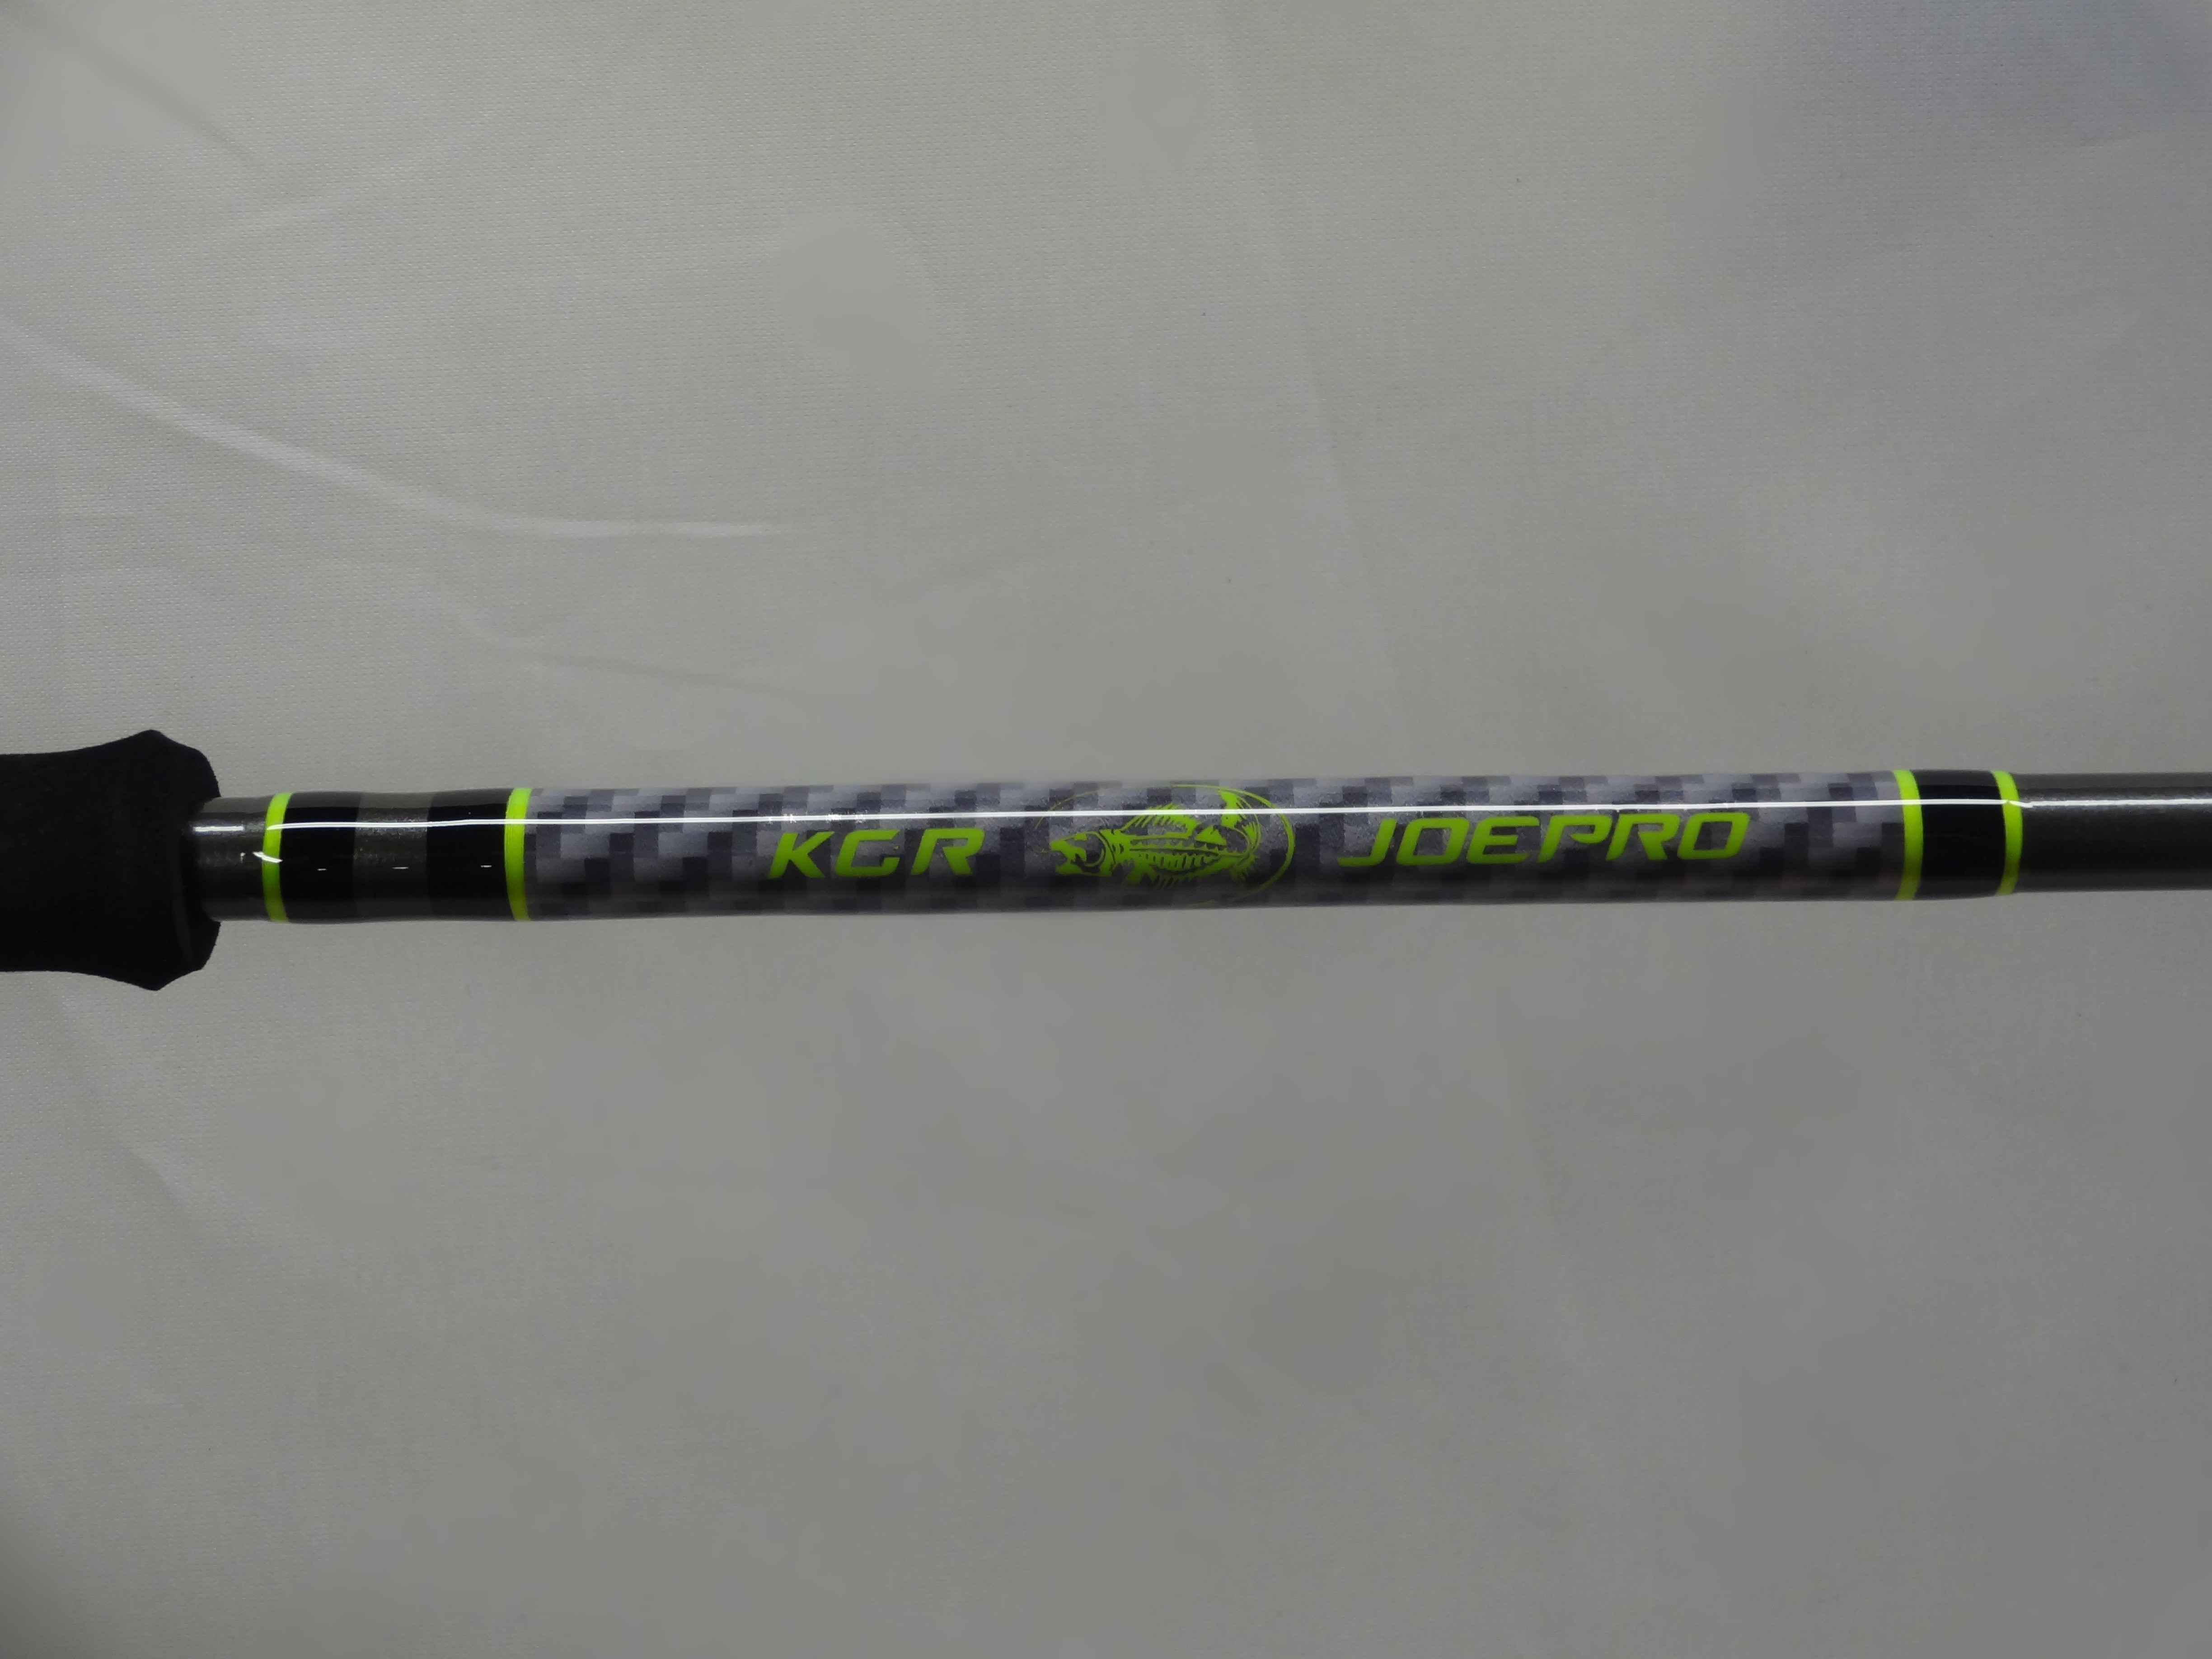 Custom fishing rod shop kraemer custom rods made in the usa for Personalized fishing pole